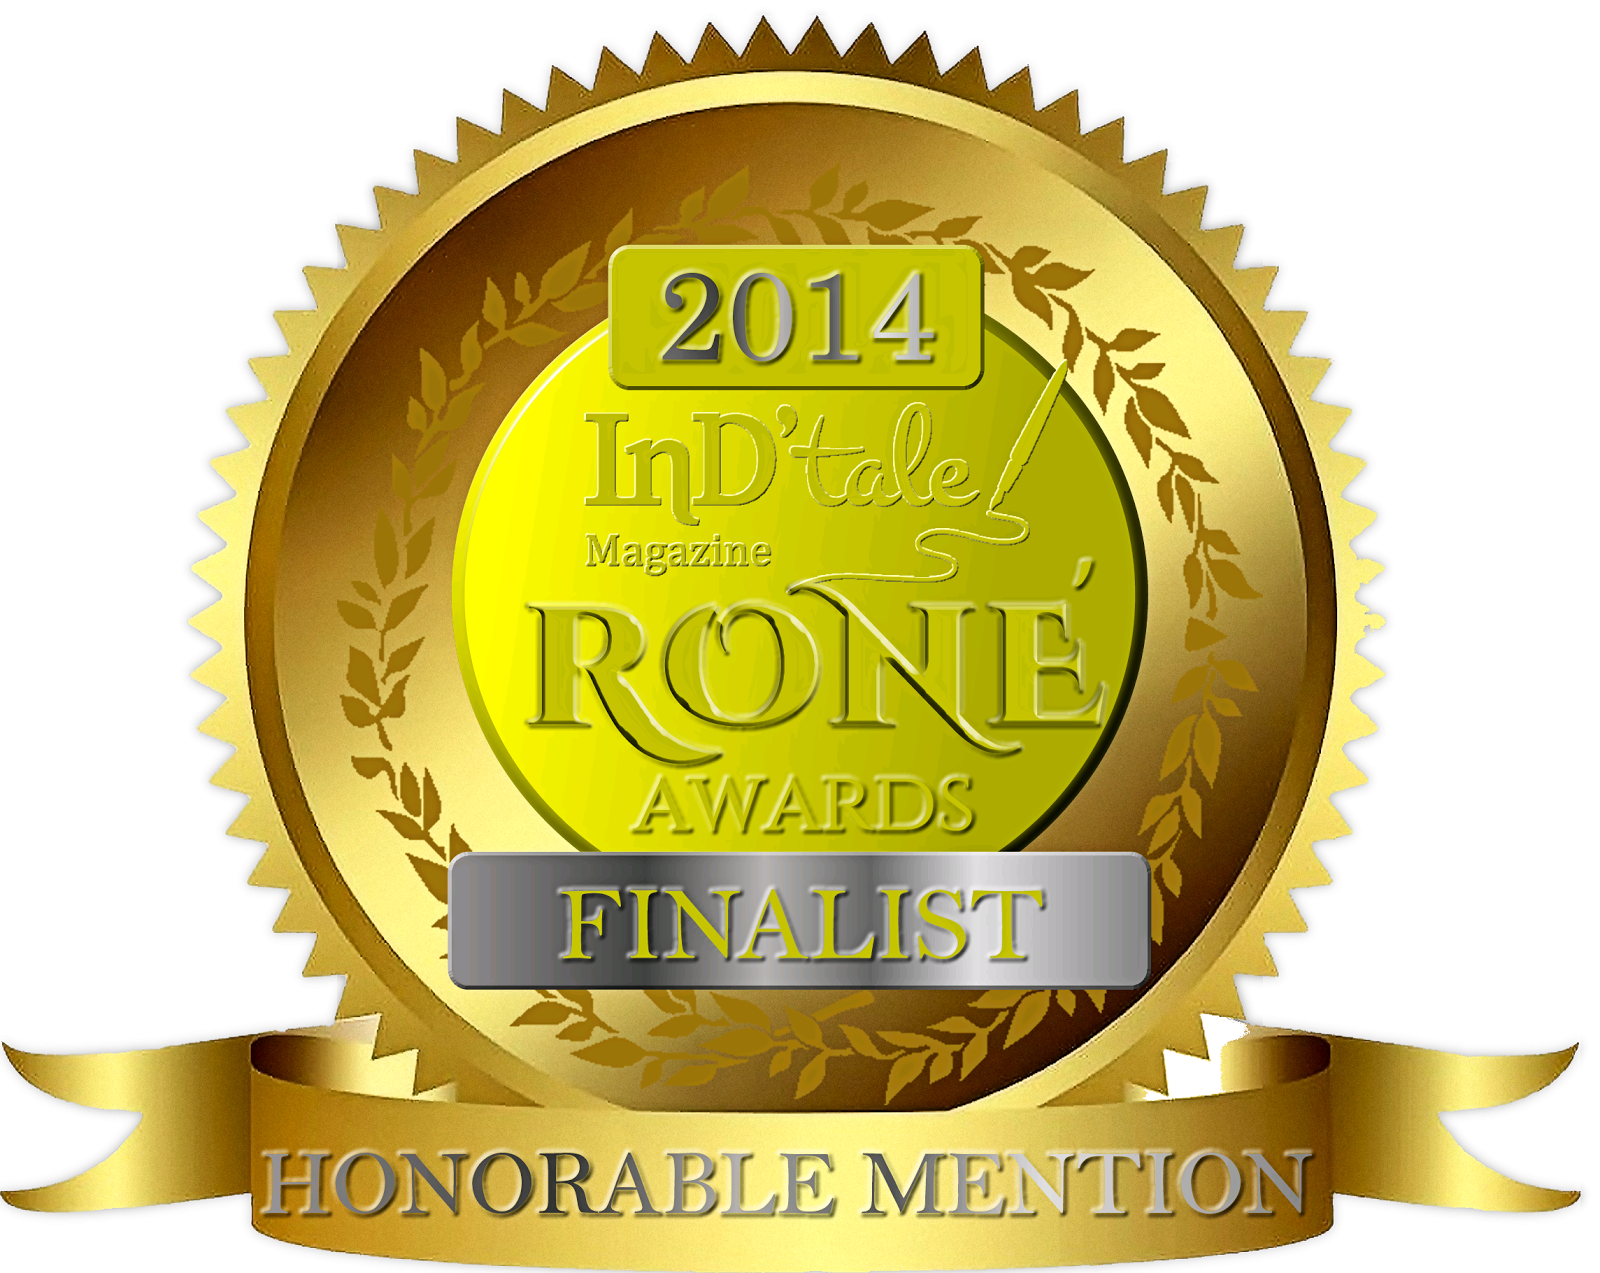 2014 RONE Award for The Kaleidoscope